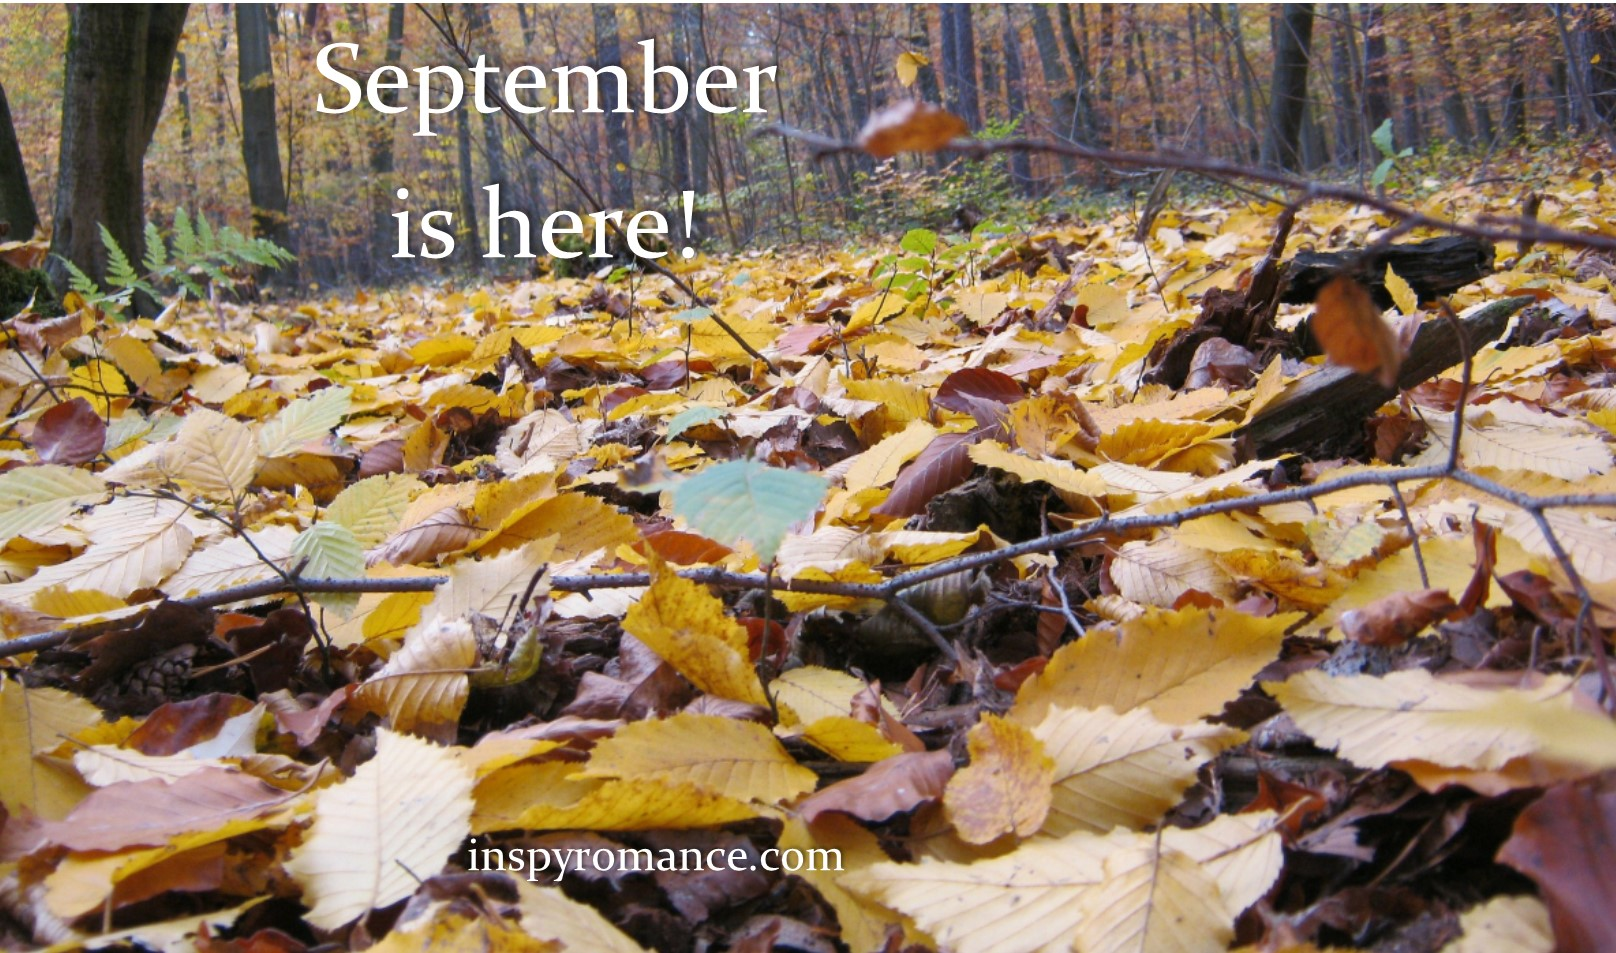 September is here